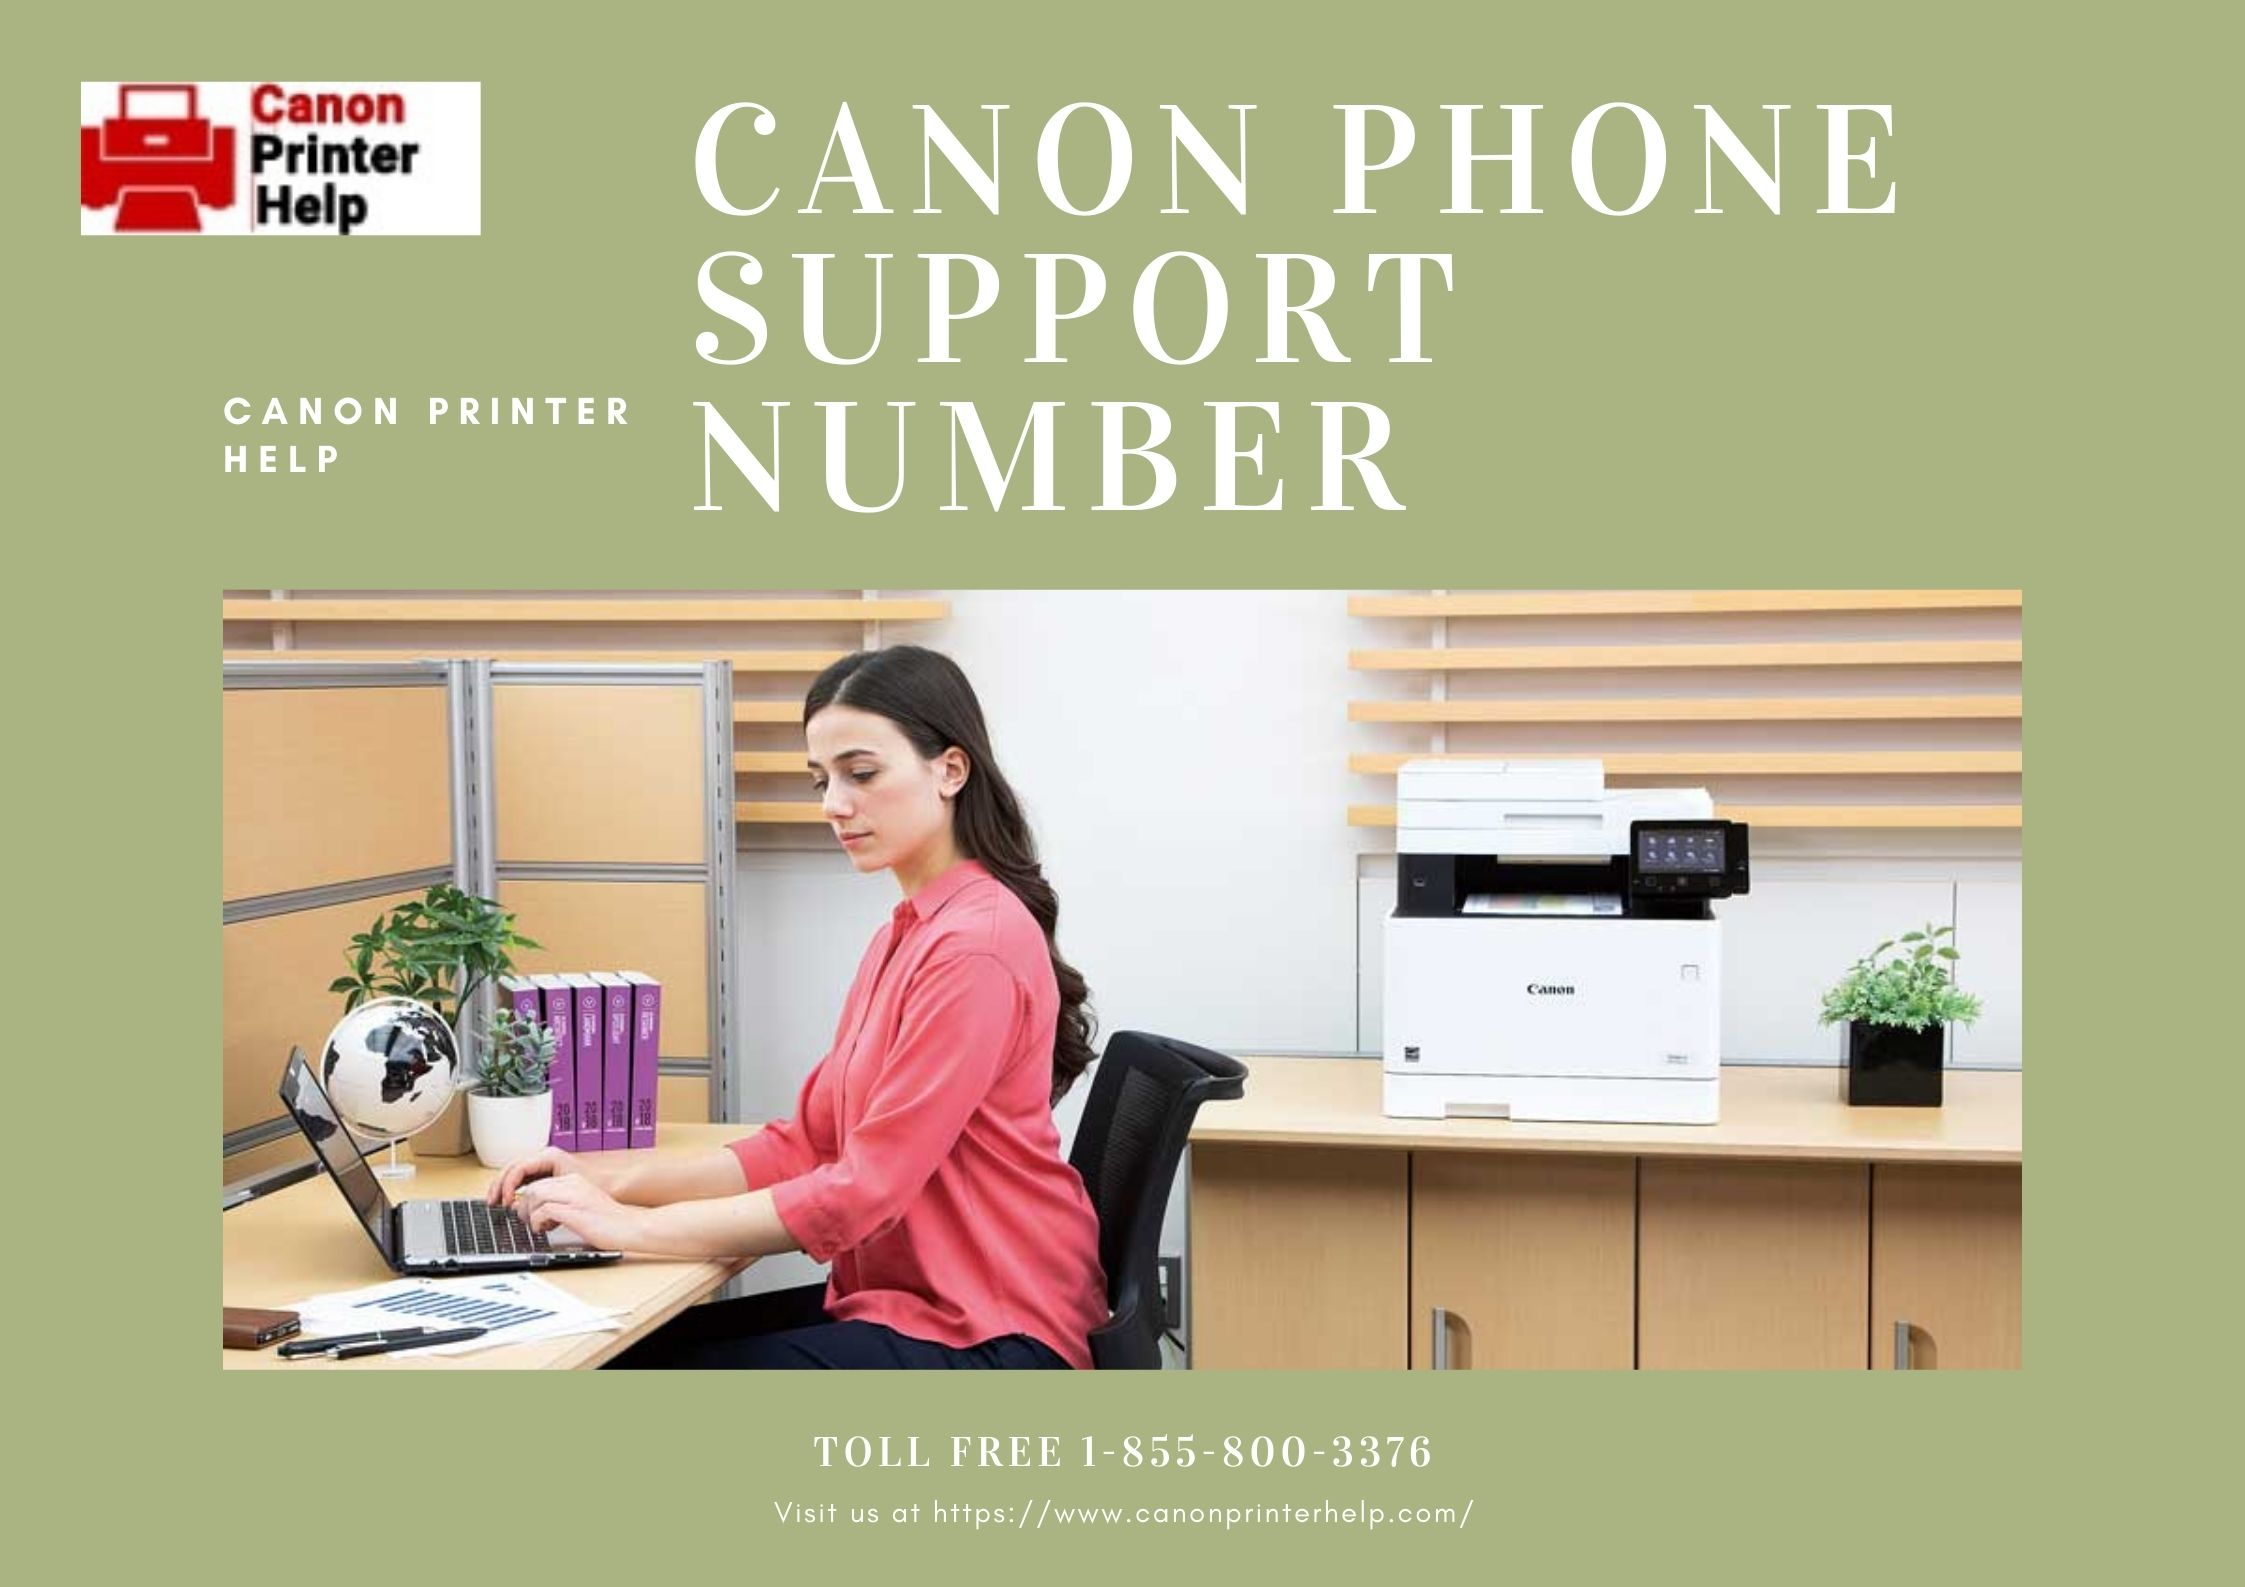 Canon Printer Help – 1-855-800-3376